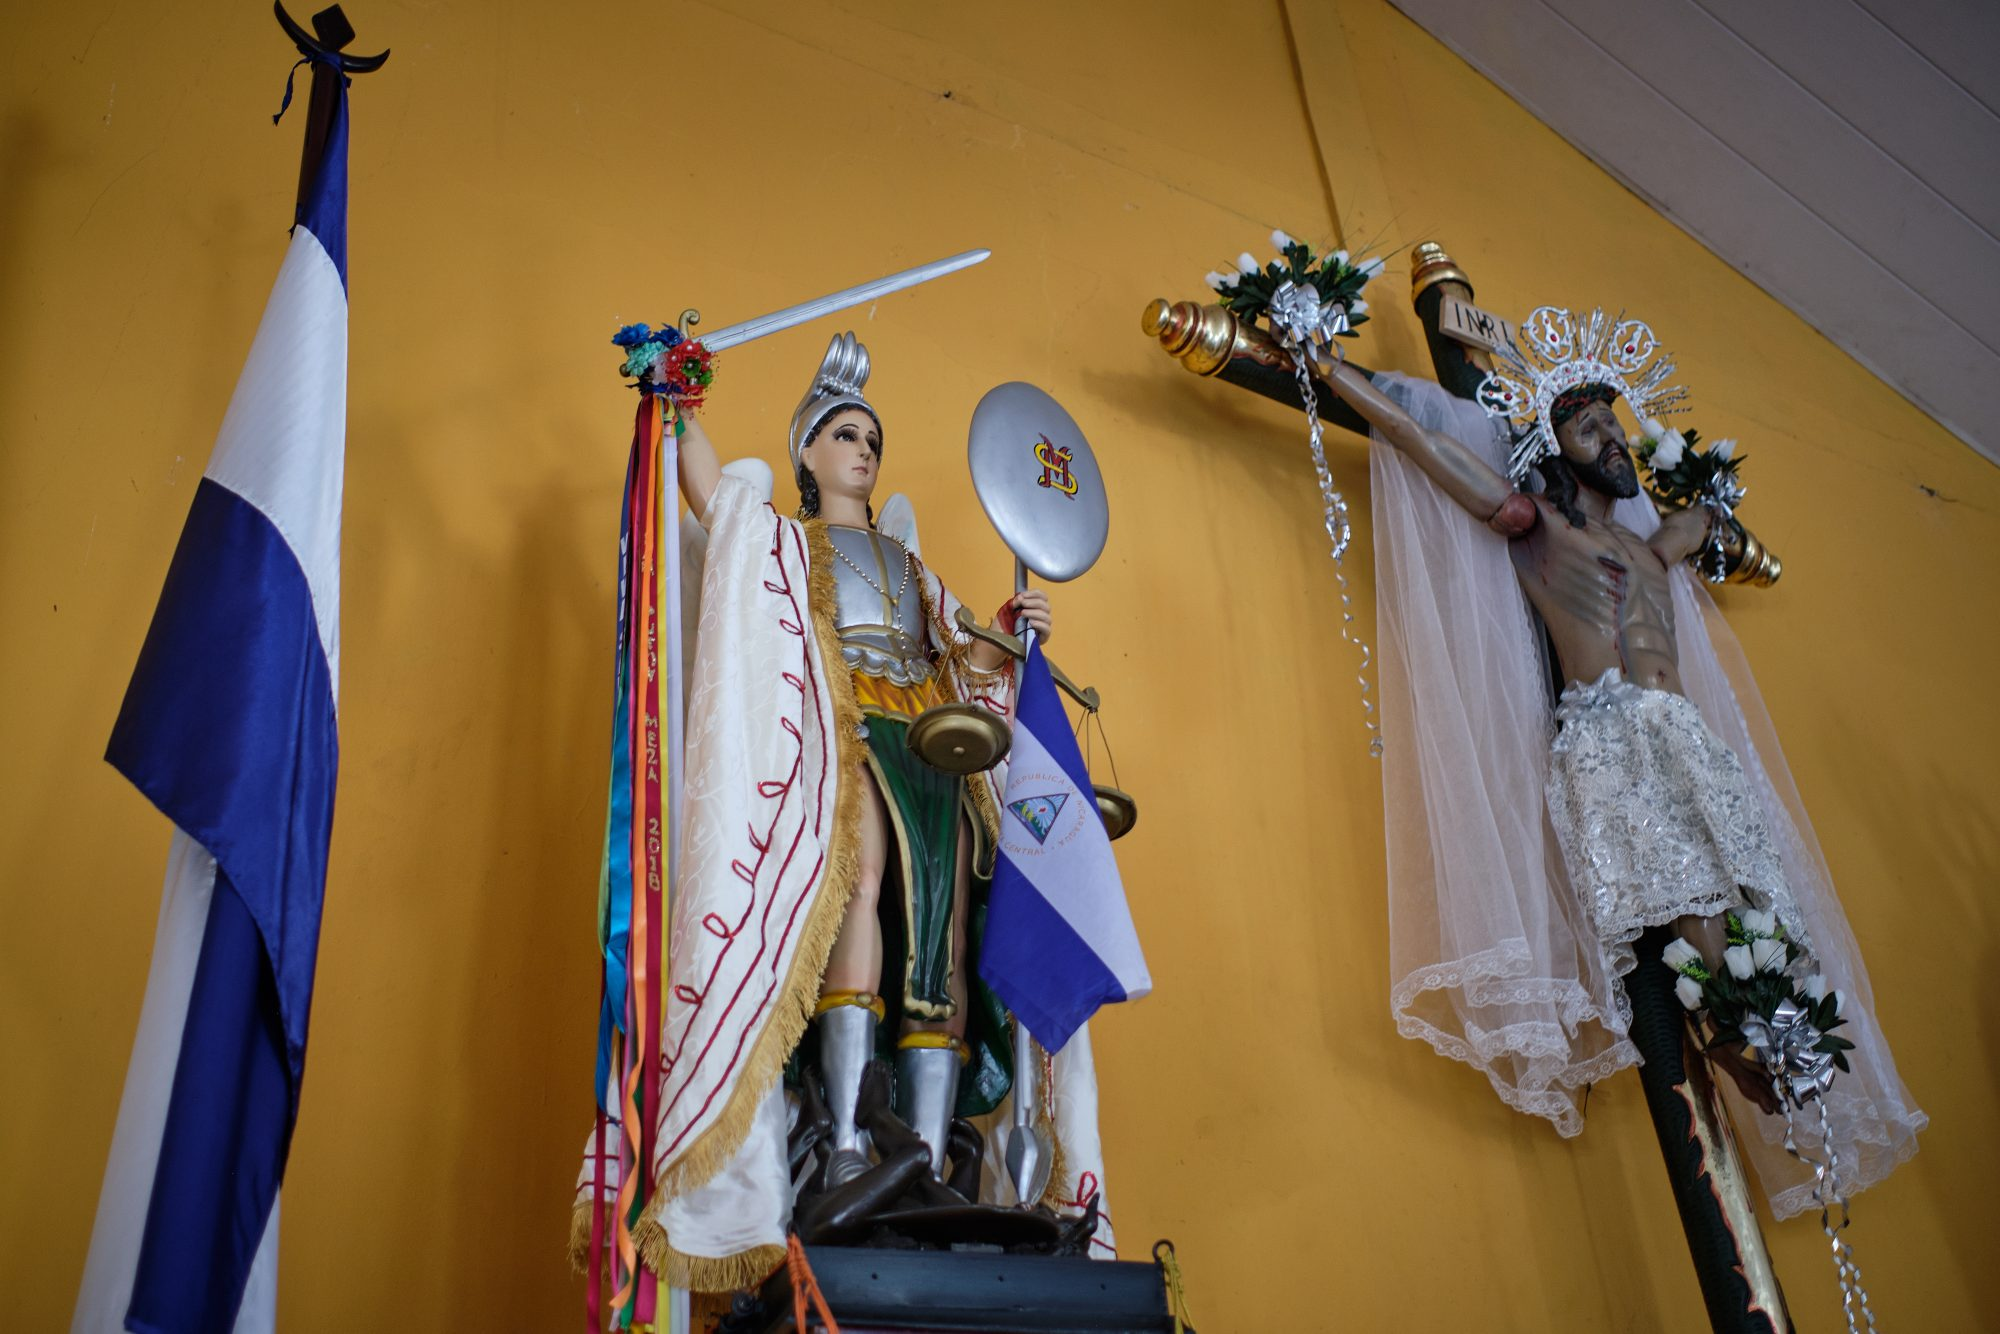 The Catholic Church, one of the last spaces for opposition in Nicaragua, is besieged by the Ortega government.